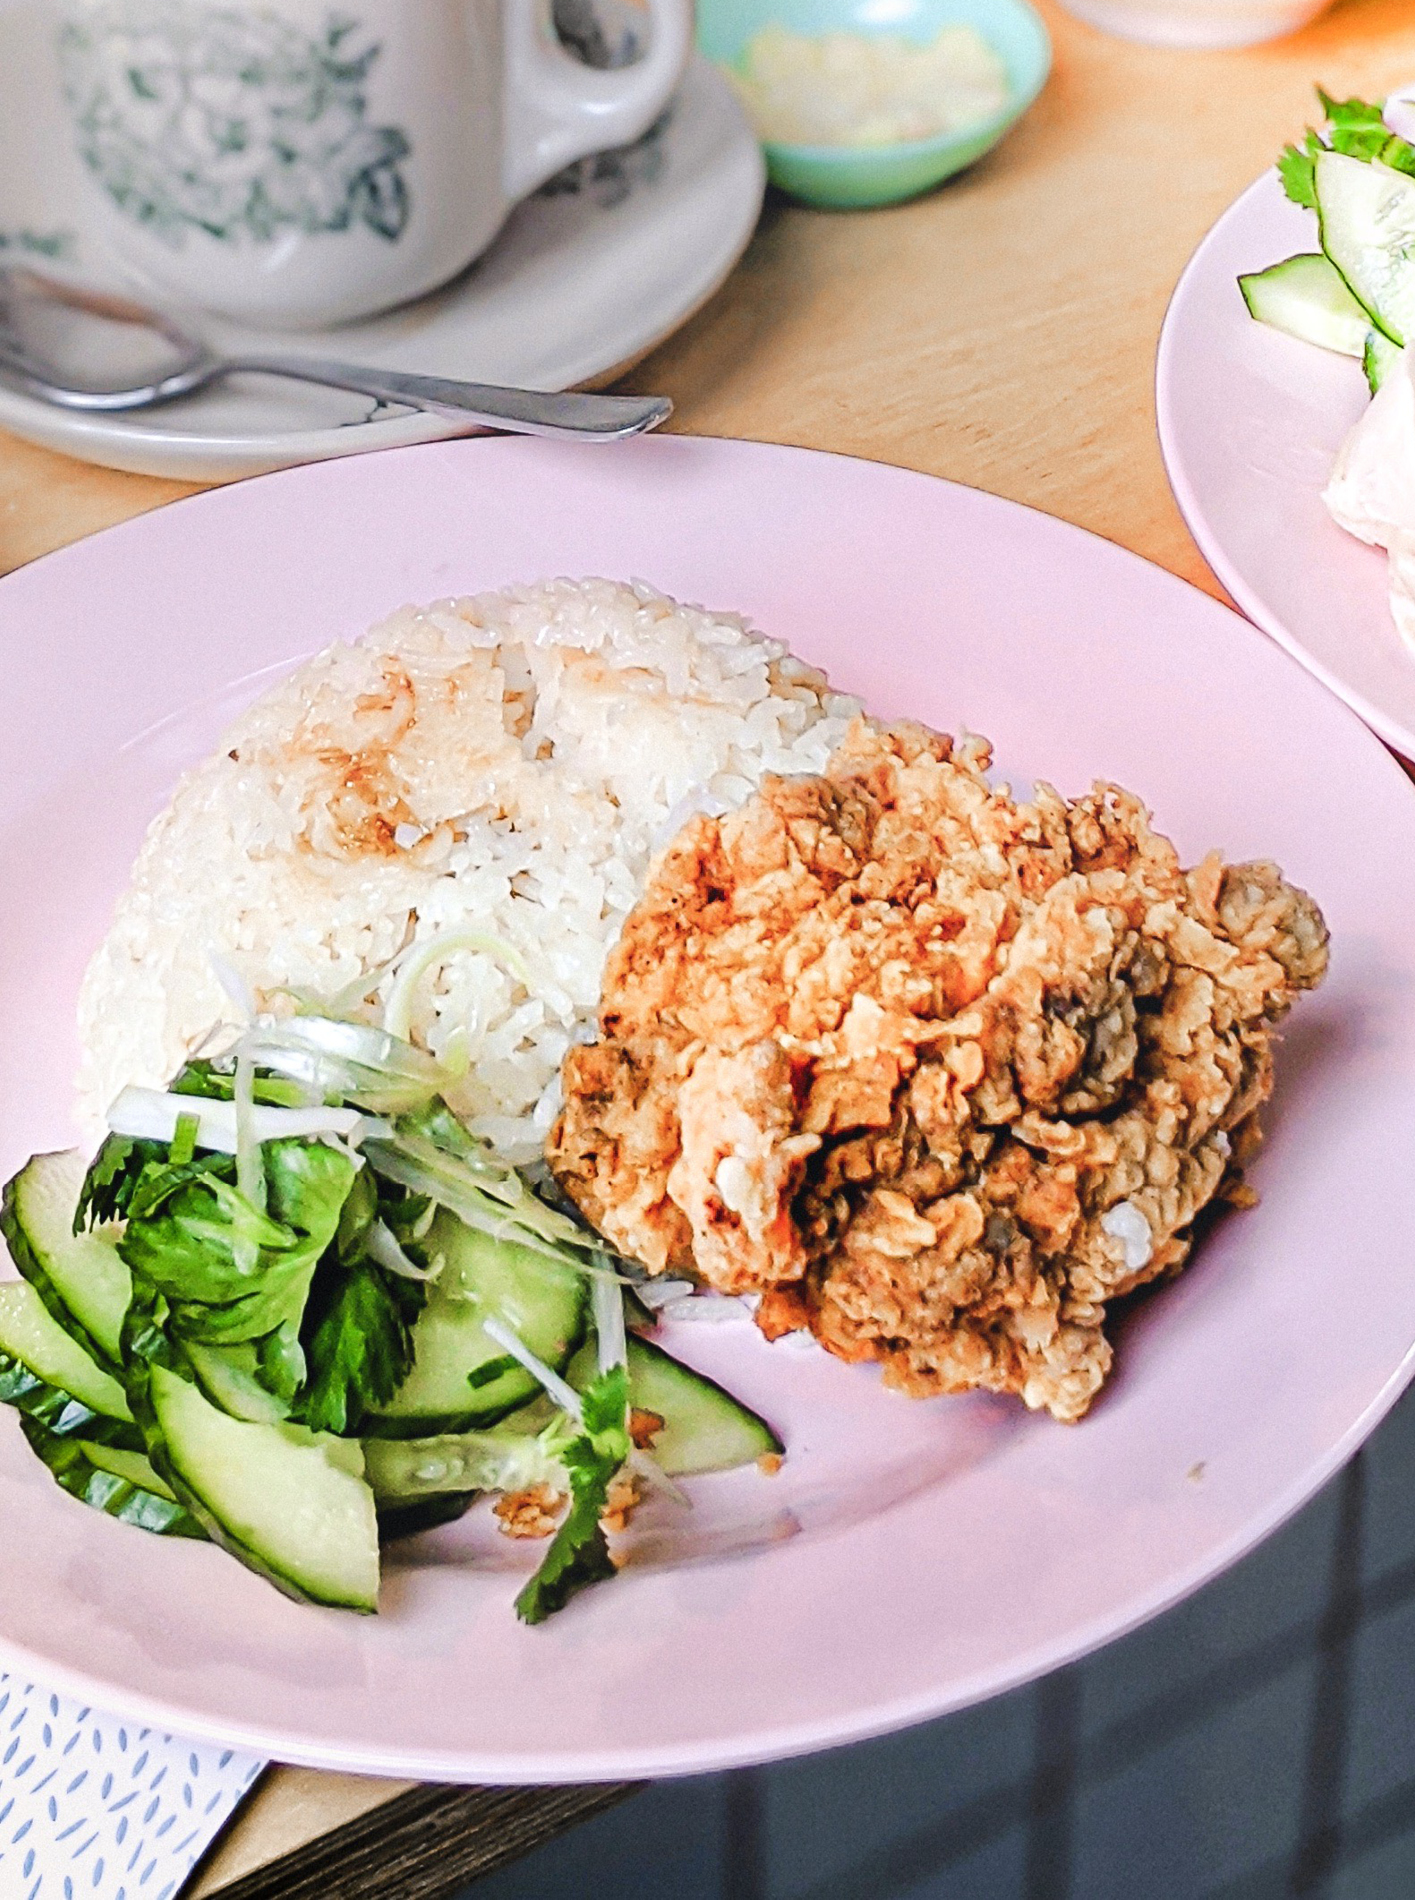 Hainanese chicken at Mei Mei, image courtesy of Sam Harris